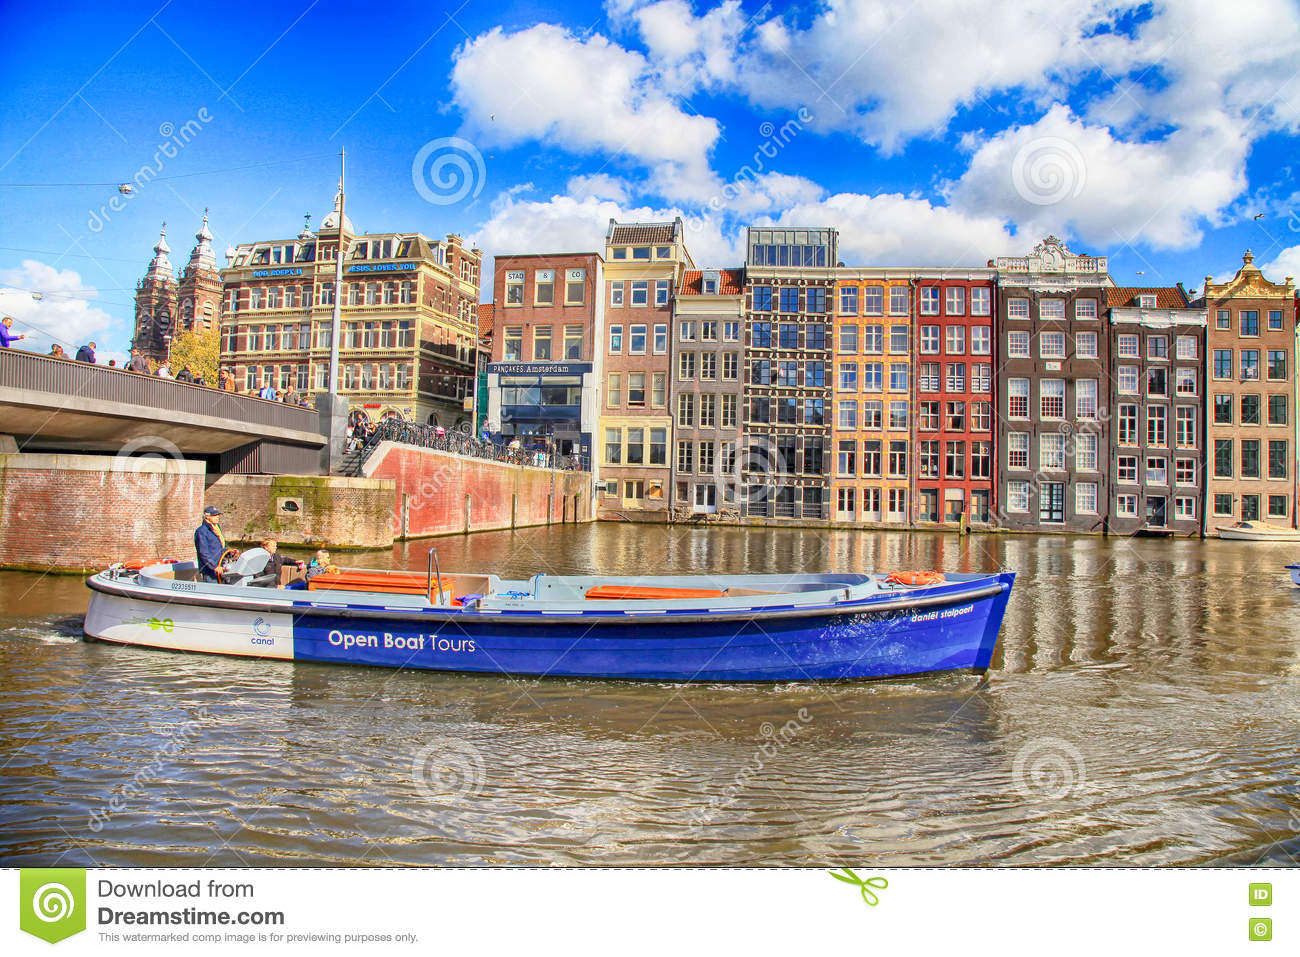 City view of canals, dutch houses and tour boat, Amsterdam, Netherlands.